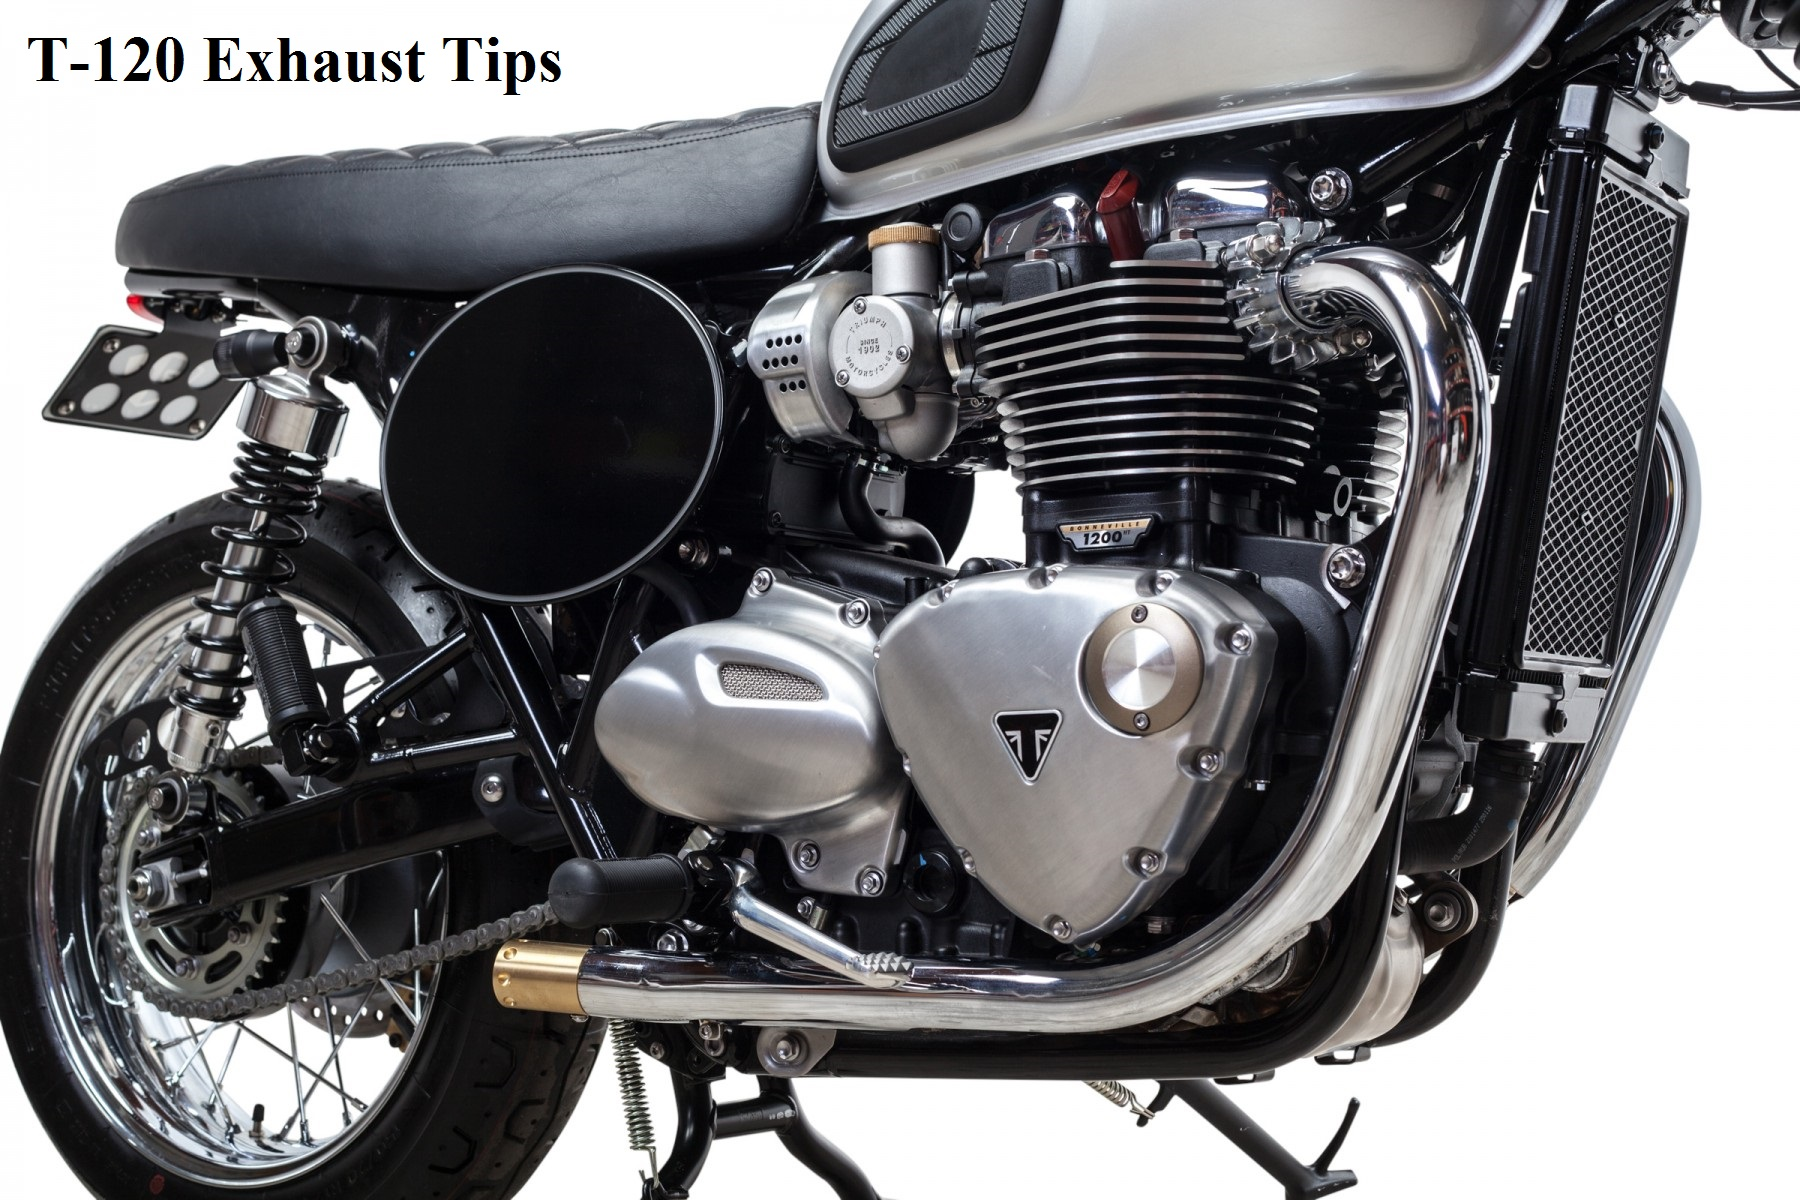 EXHAUST TIPS FOR T120 | BLACK